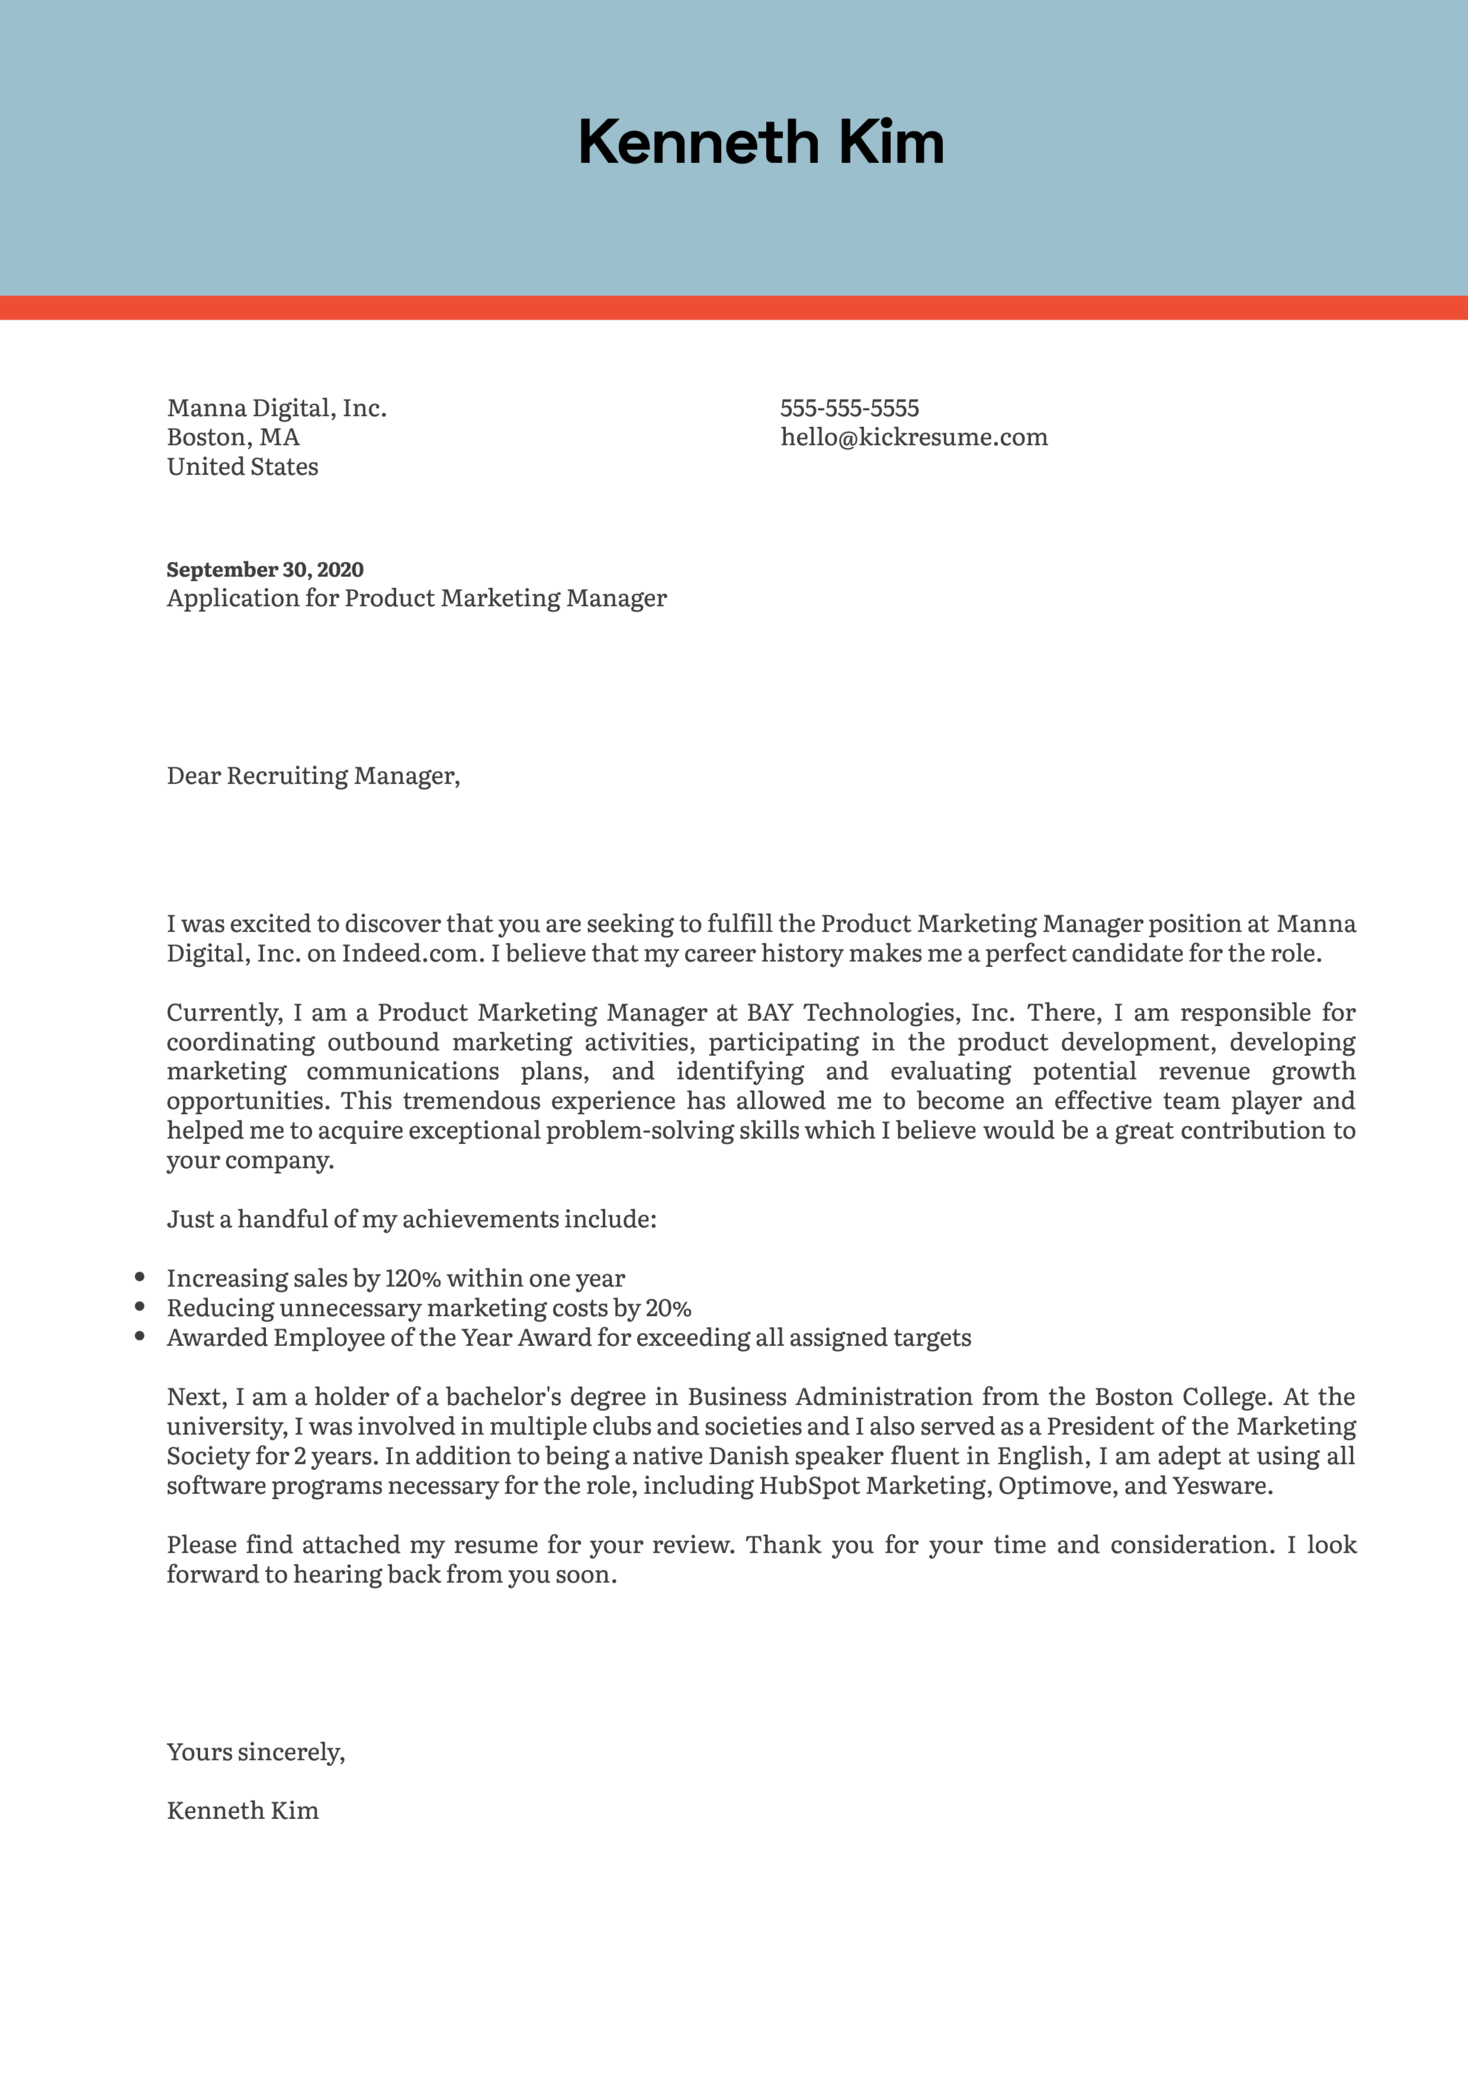 Product Marketing Manager Cover Letter Example